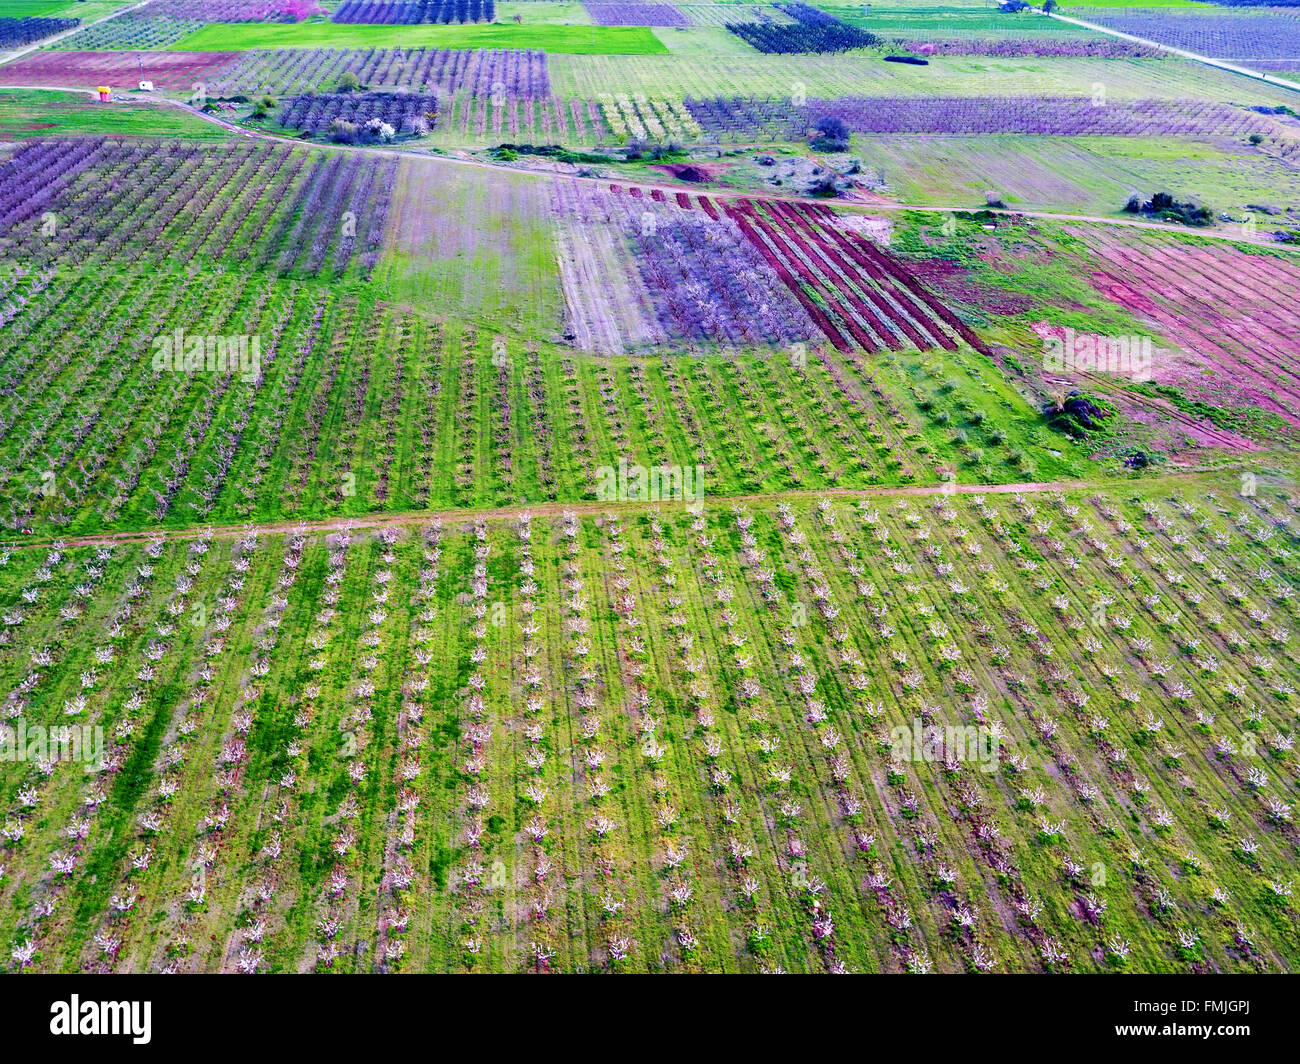 Aerial view over agricultural fields with blooming trees